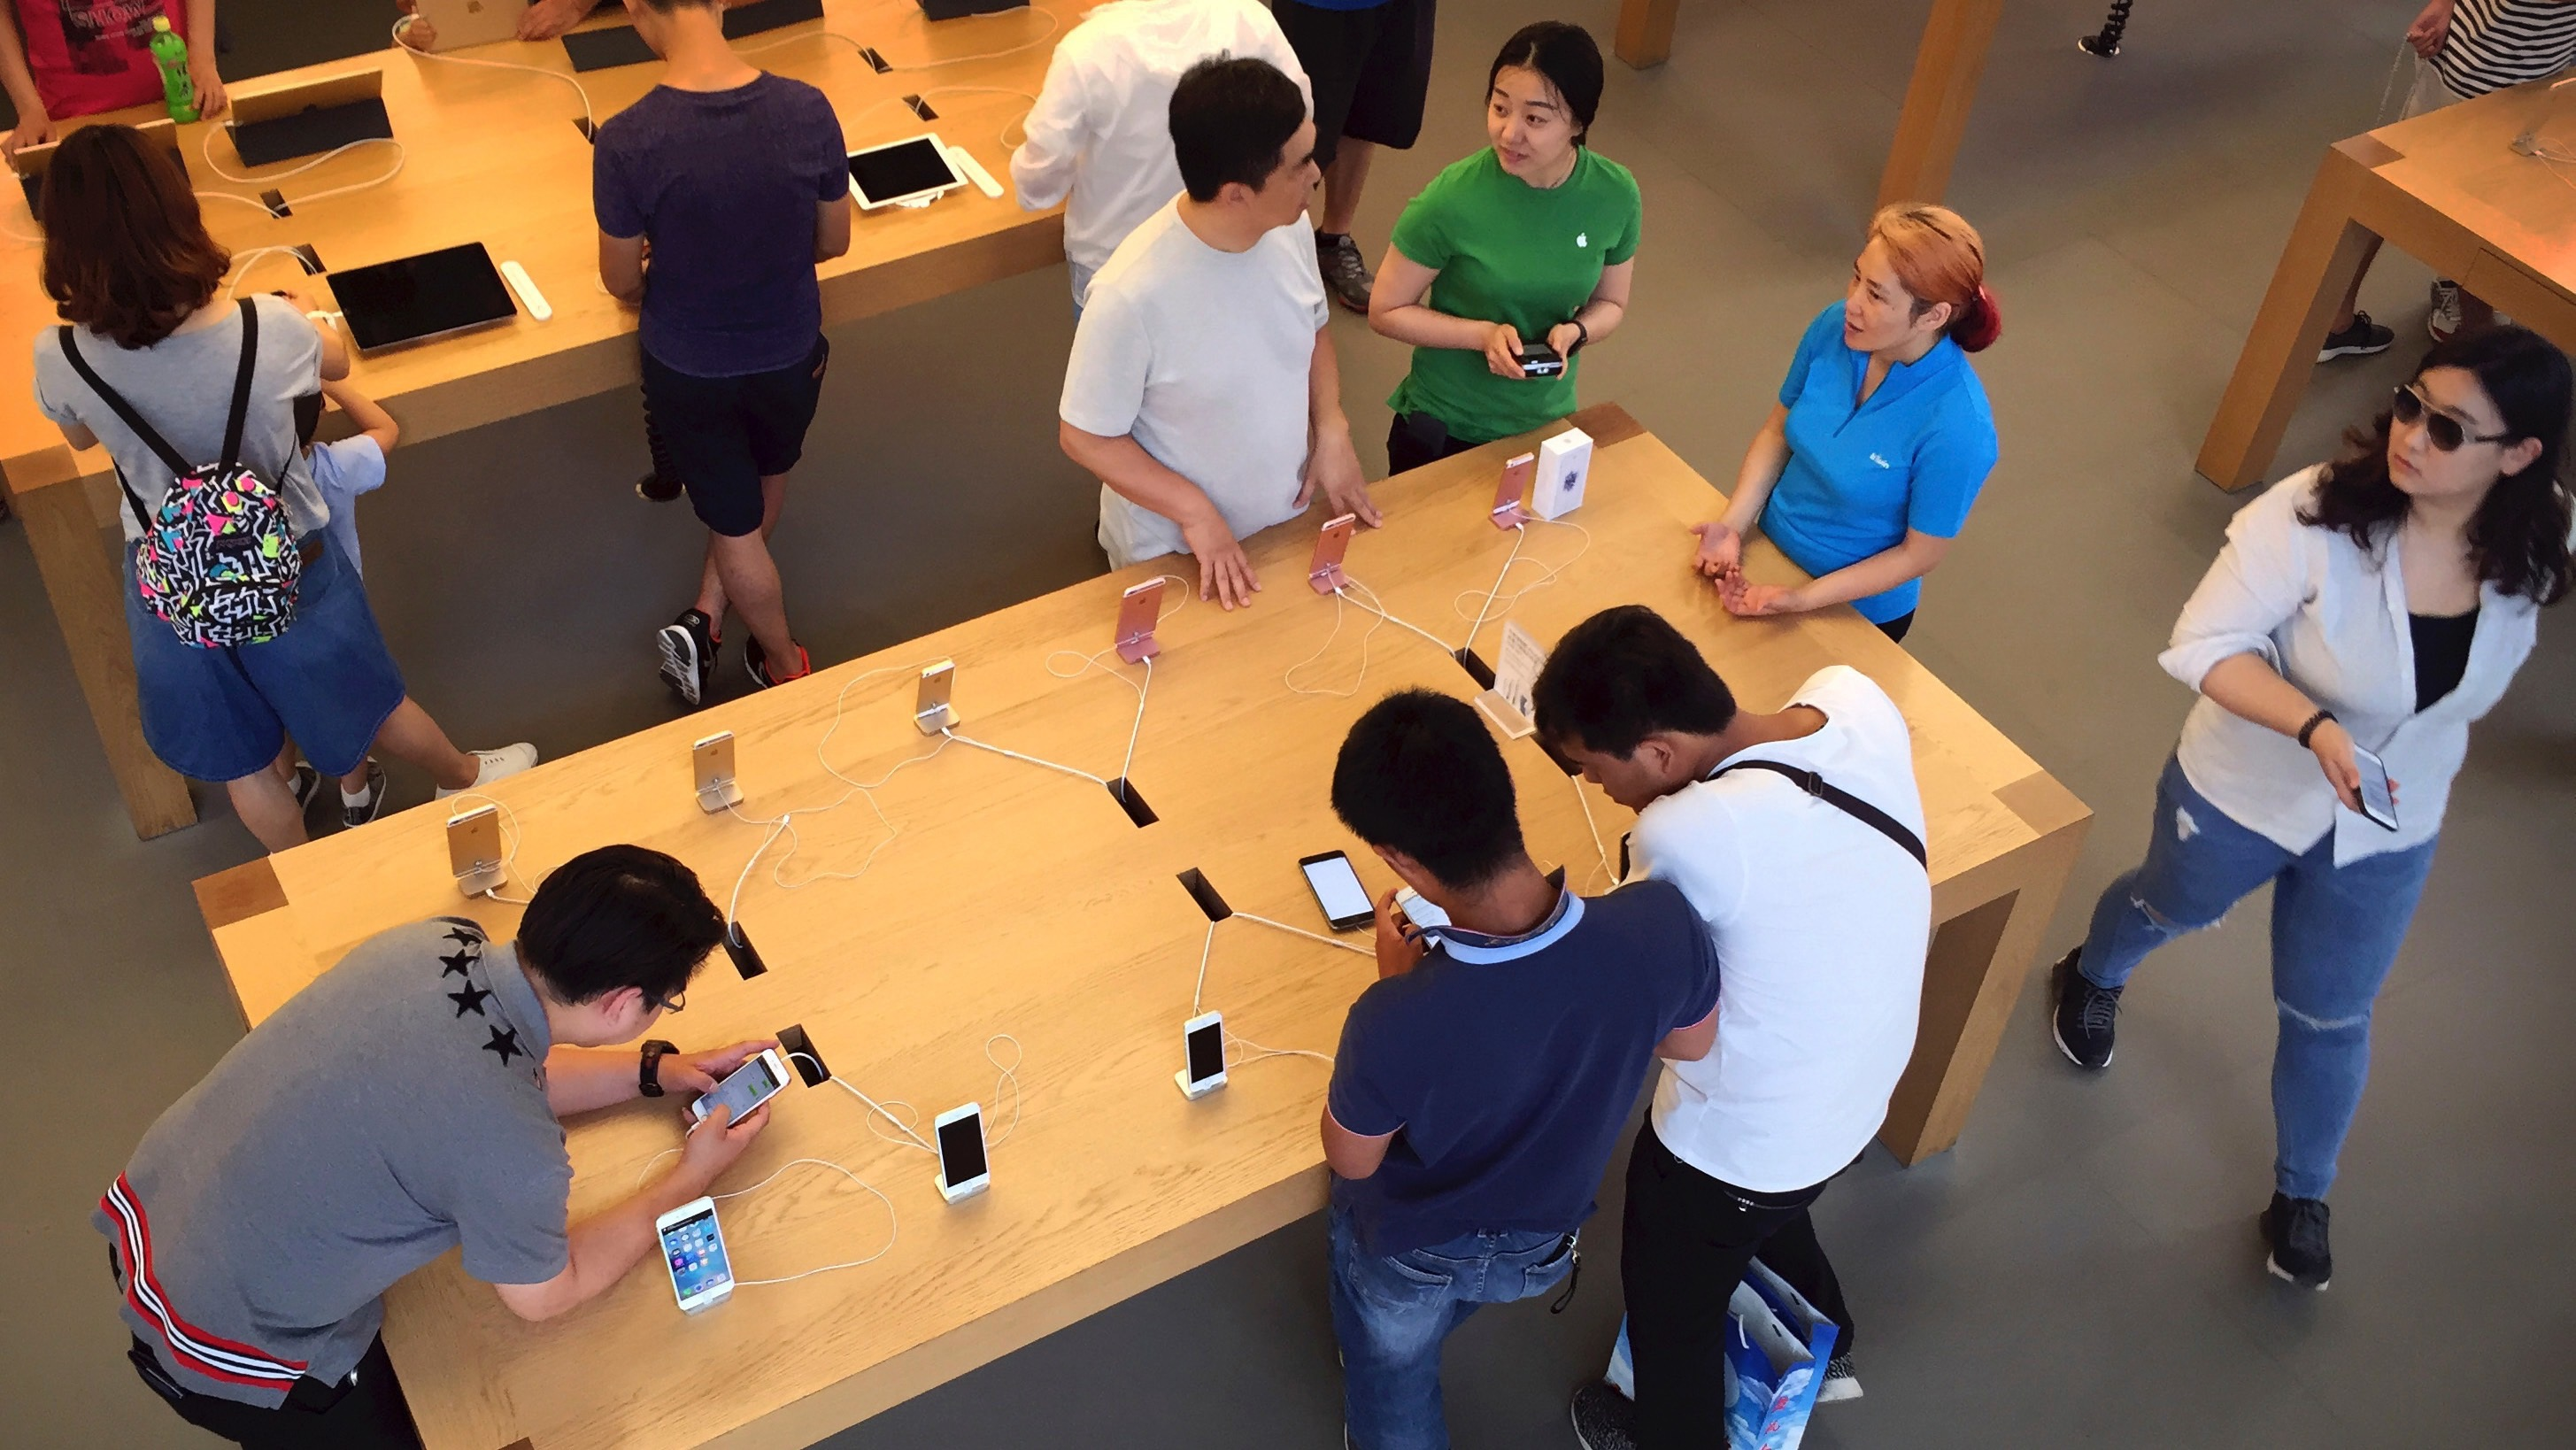 Customers look at Apple iPhone SE and 6S models on display at an Apple Store in Beijing, Saturday, June 18, 2016. A Chinese regulator has ordered Apple Inc. to stop selling two versions of its iPhone 6 in the city of Beijing after finding it looks too much like a competitor, but Apple says sales are going ahead while it appeals. (AP Photo/Mark Schiefelbein)